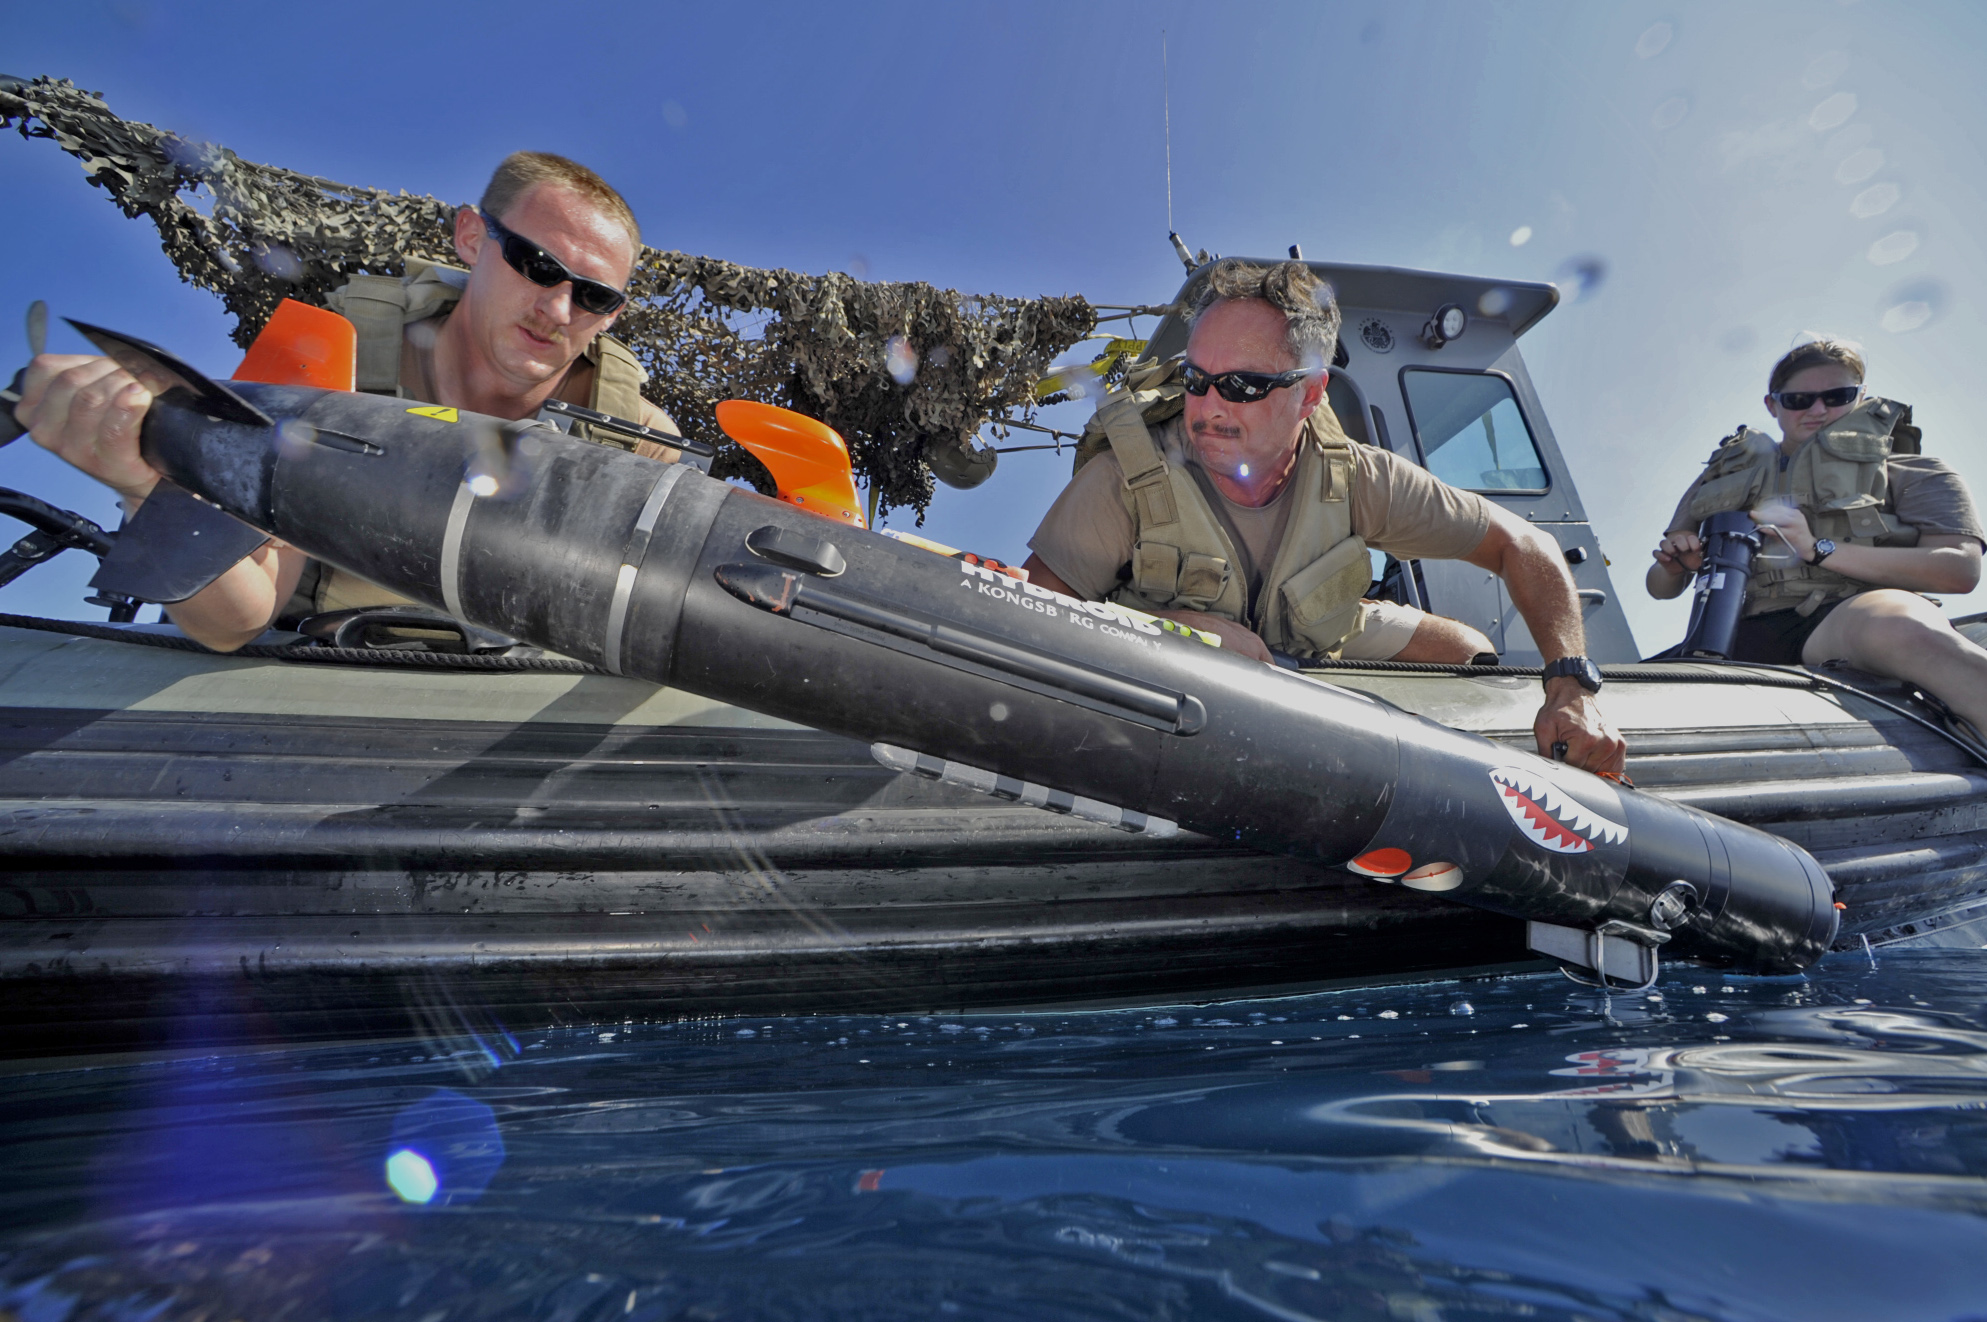 Aerographer's Mate 2nd Class Robert Carlson, left, and Aerographer's Mate 1st Class Melvin Lankford, assigned to Commander, Task Group 56.1, deploy a MK 18 MOD 2 Swordfish to survey the ocean floor during the International Mine Countermeasure Exercise (IMCMEX) in the Gulf of Oman on November 4, 2014. US Navy photo.